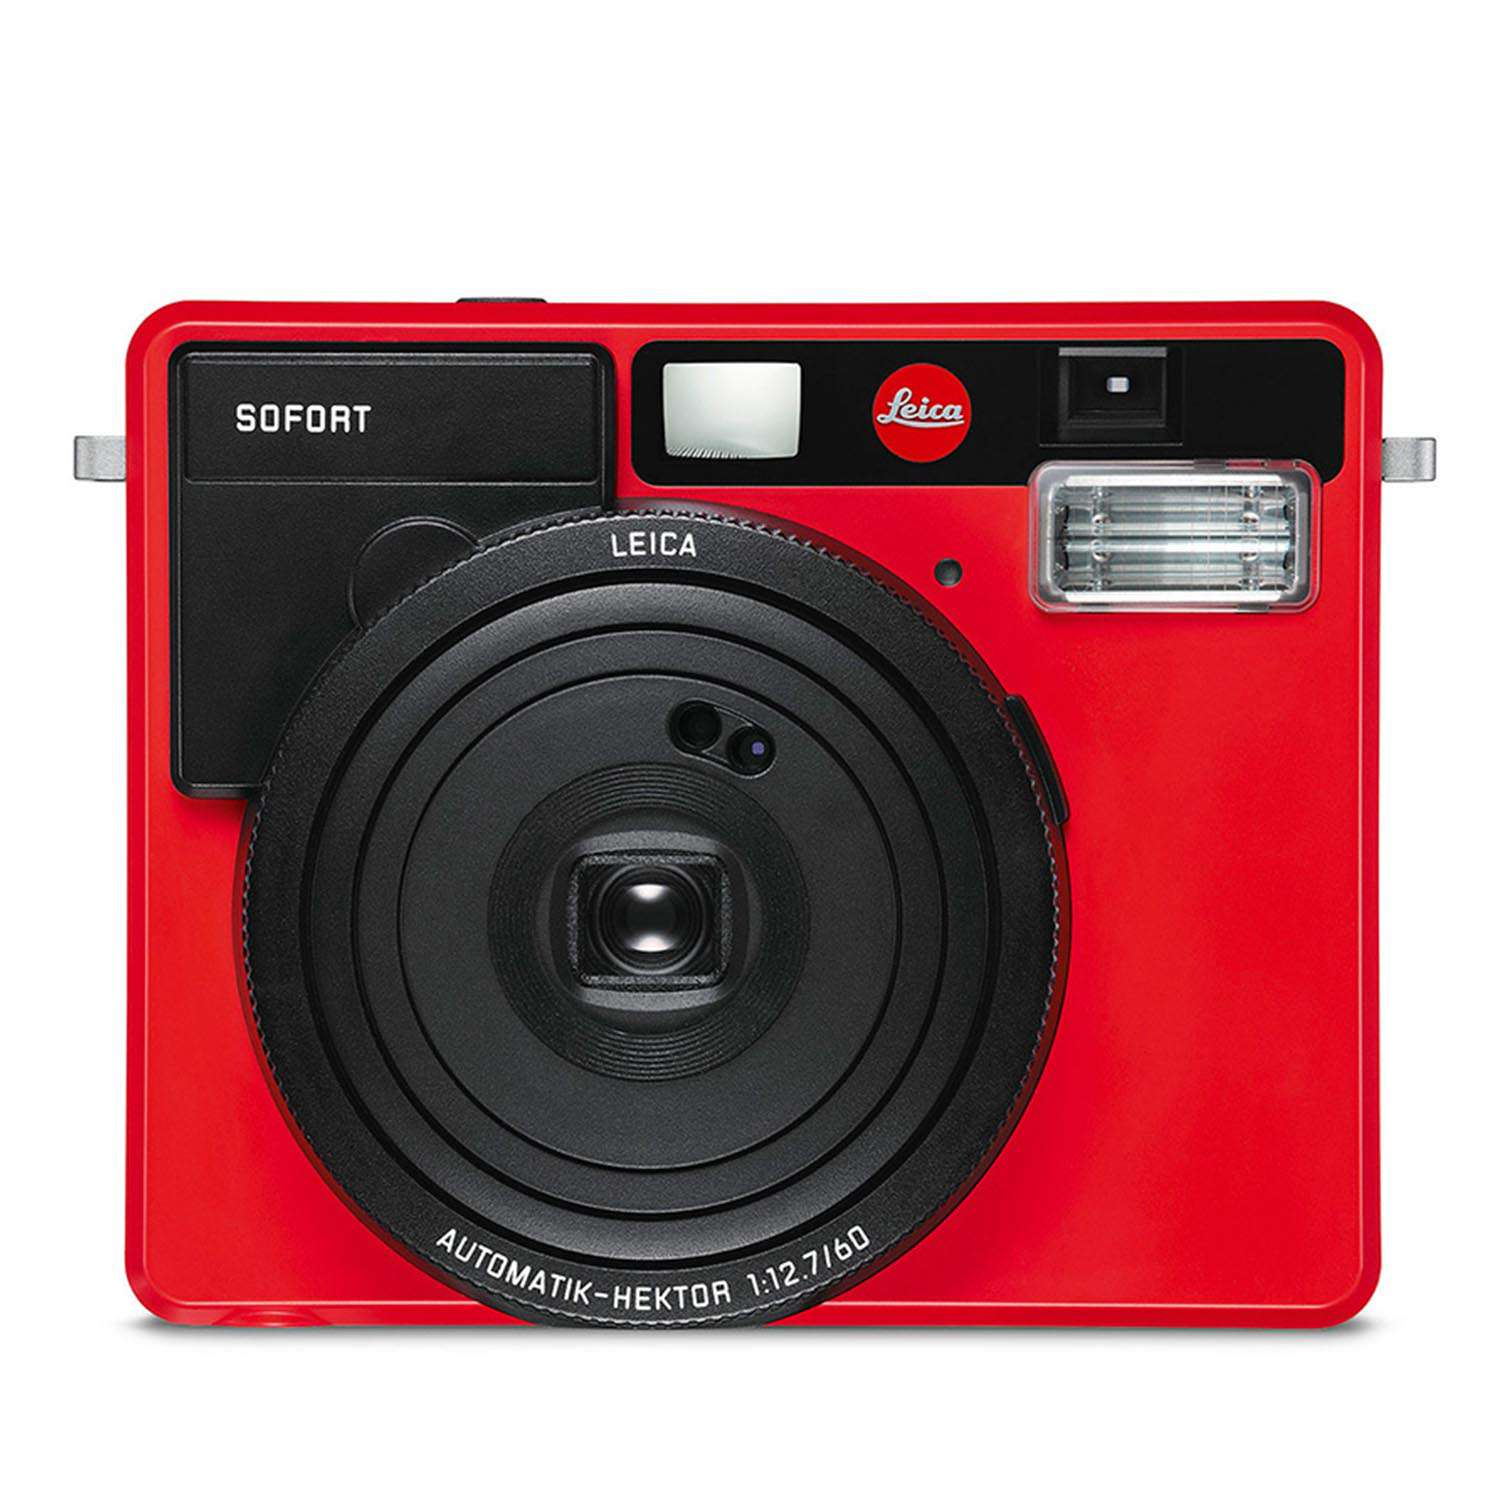 Leica Sofort - Red